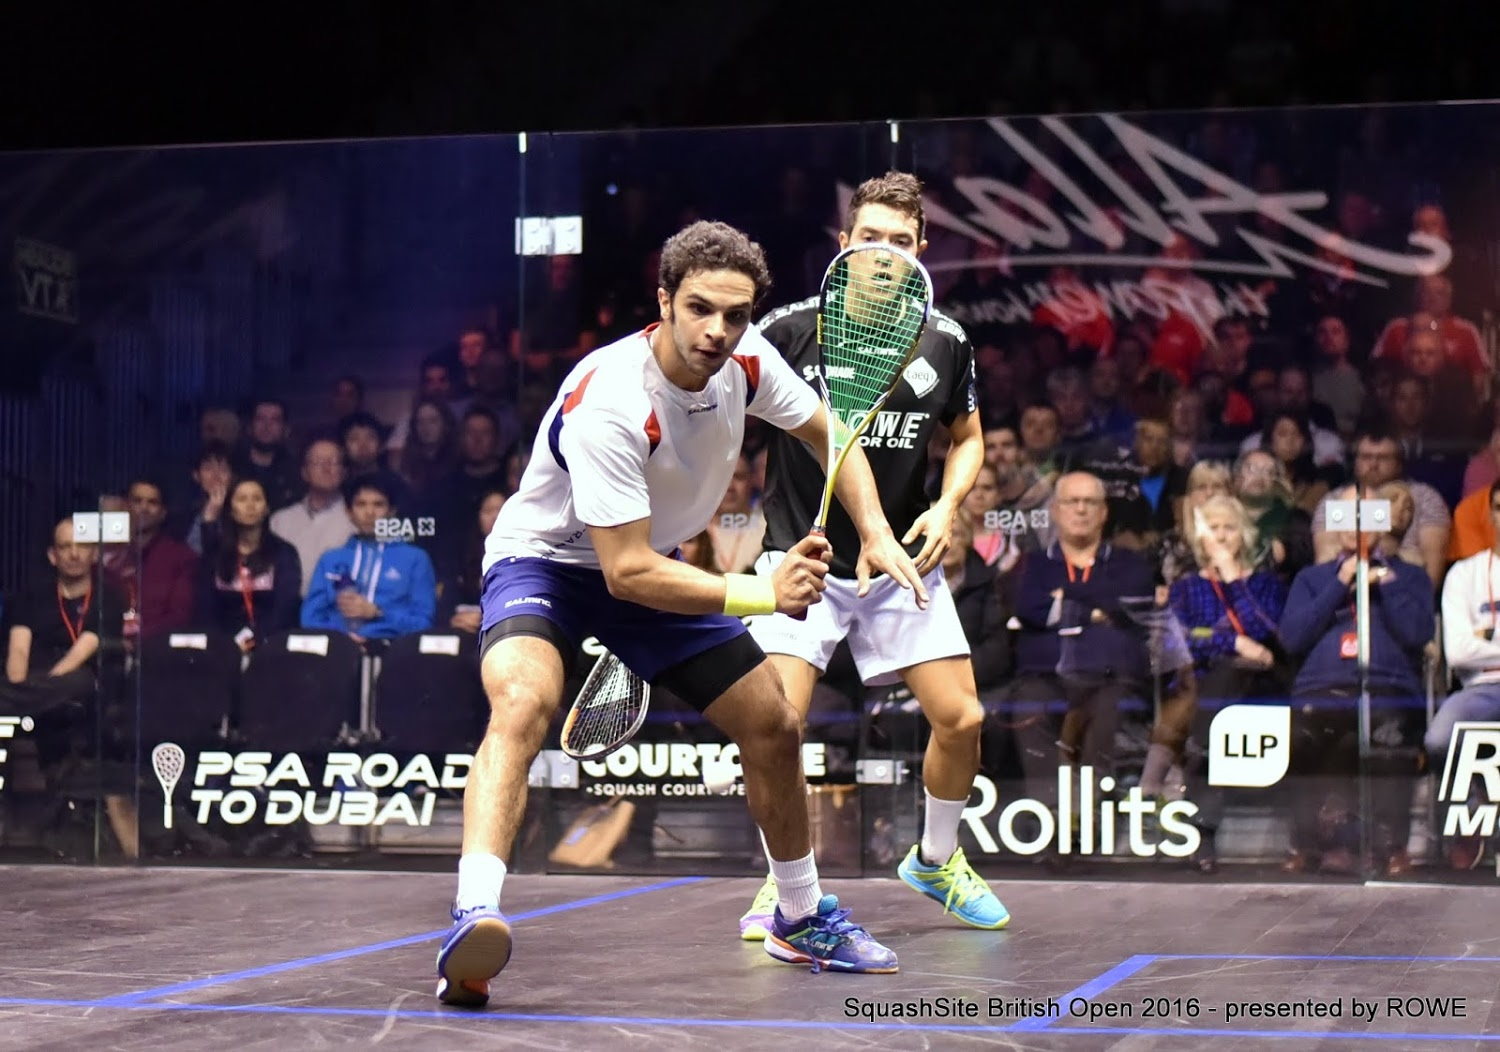 Mohamed Abouelghar 2016 British Open